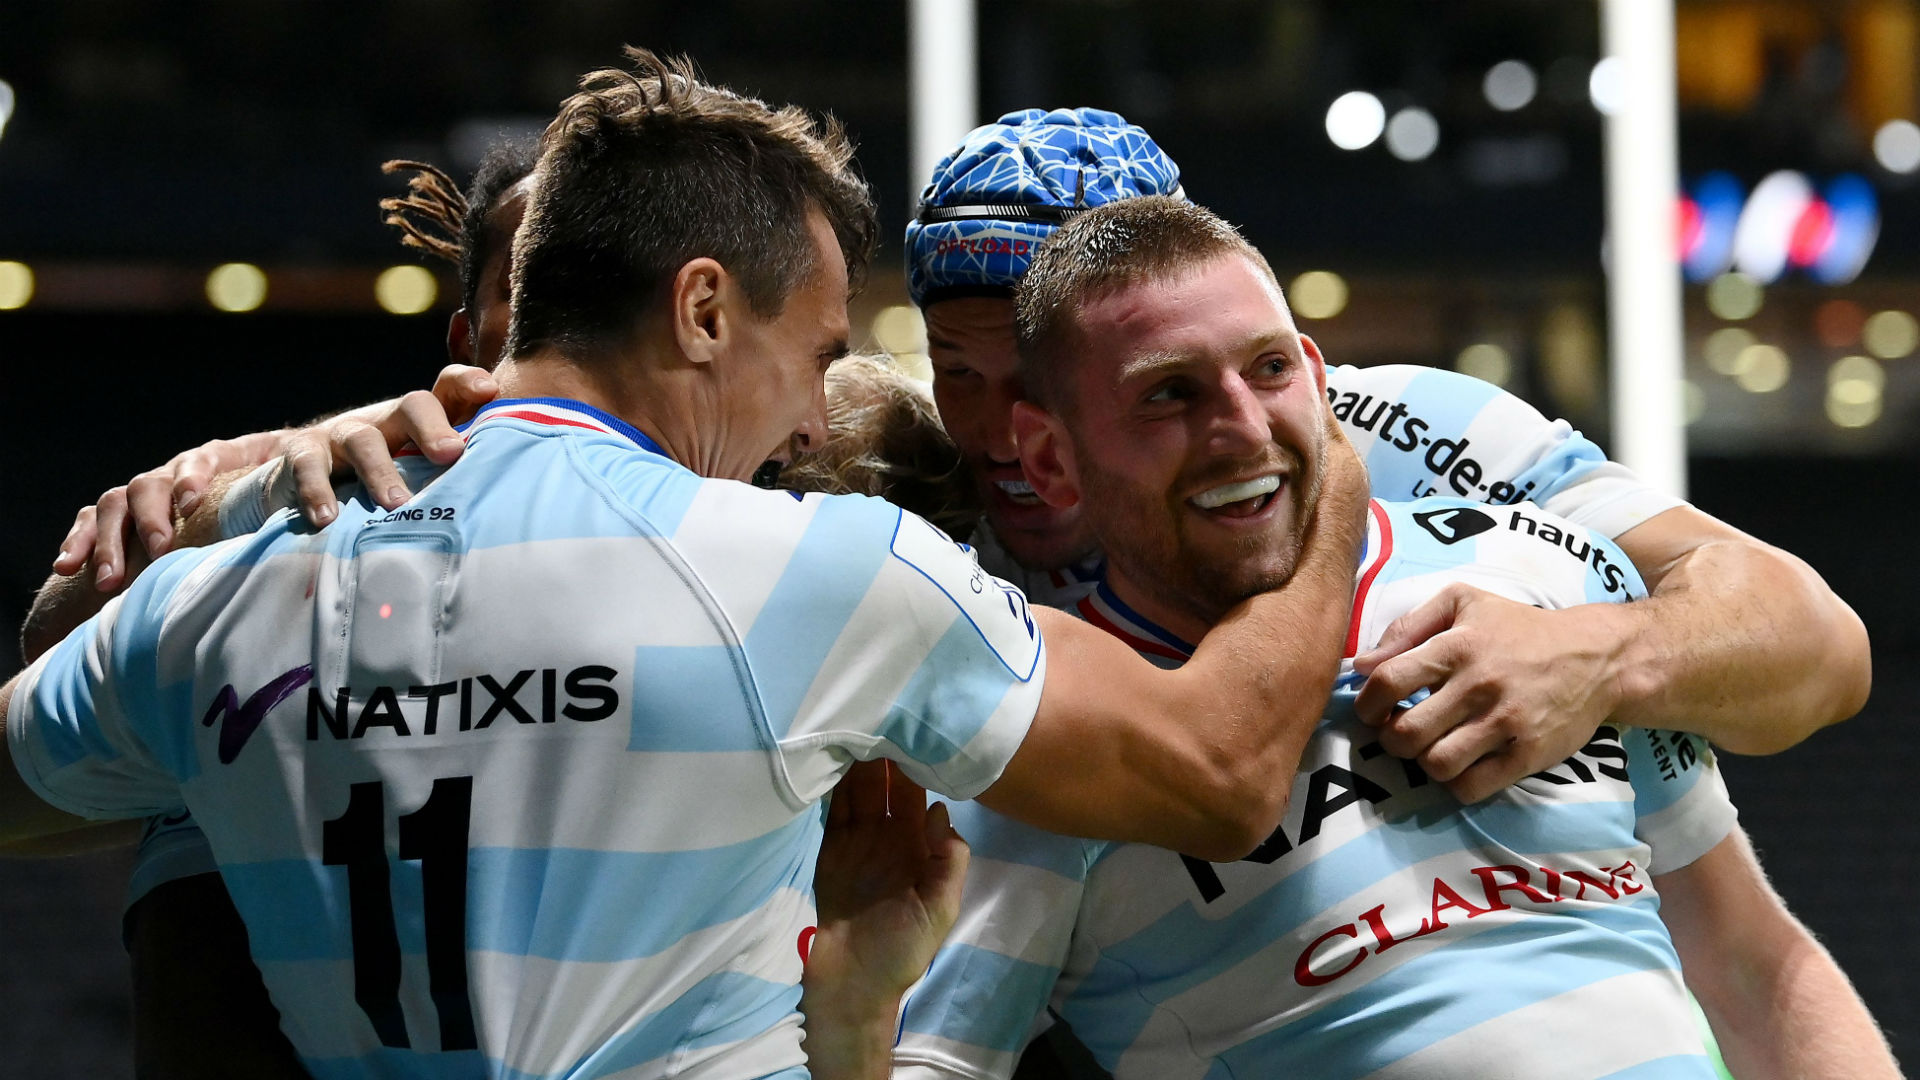 Exeter Chiefs reached their first European Champions Cup final at Toulouse's expense after Racing 92 dumped Saracens out.